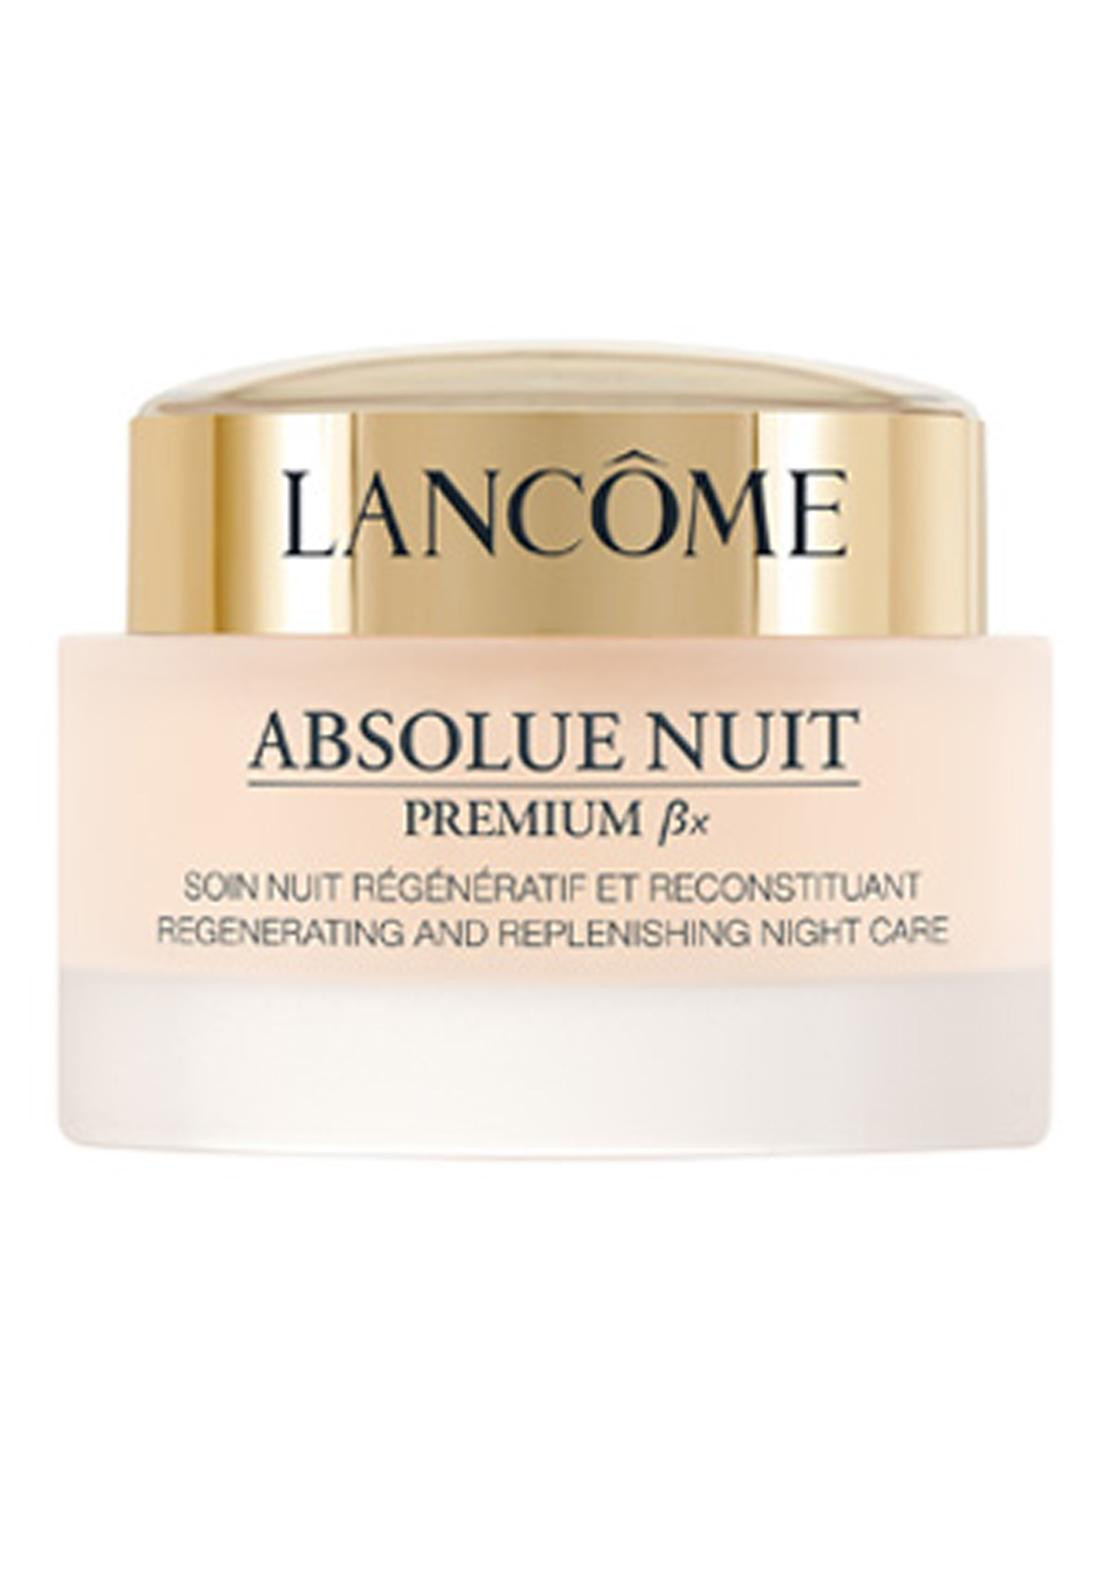 Lancome Absolue Nuit Premium Bx Night Cream, 75ml Lancome